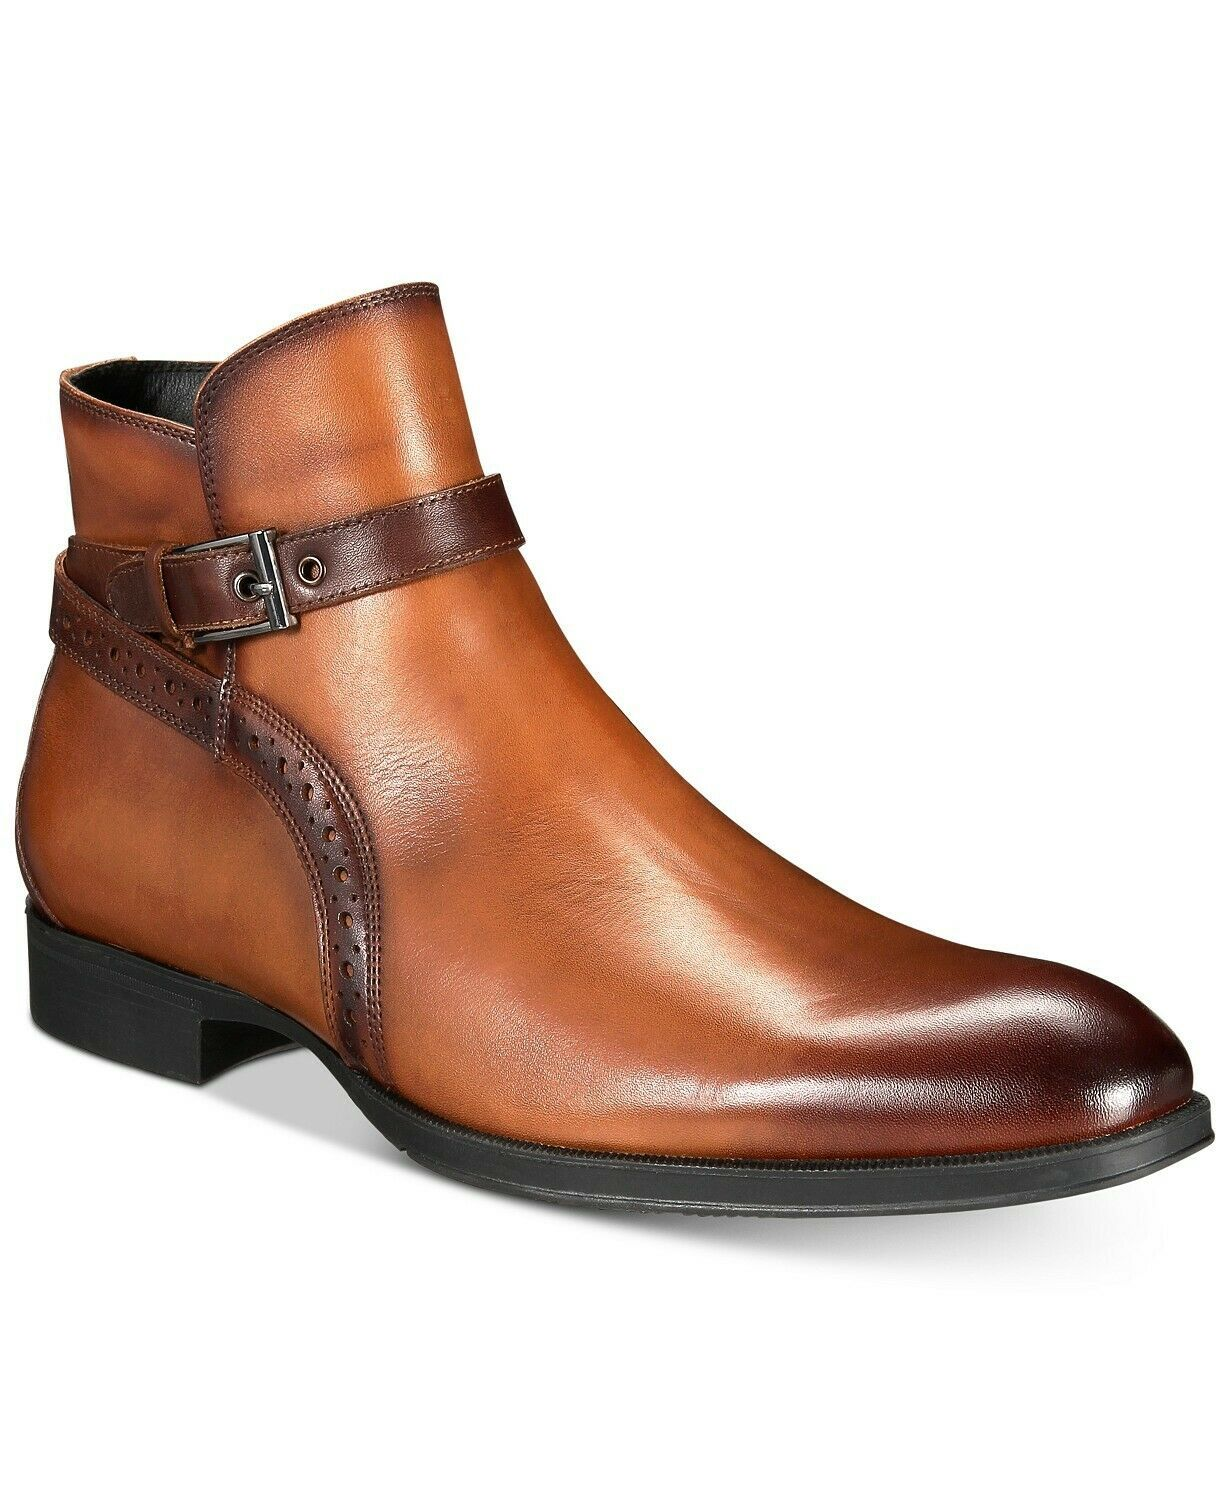 Primary image for Men Brown Jodhpurs Burnished Buckle Strap Premium Quality Ankle Leather Boots